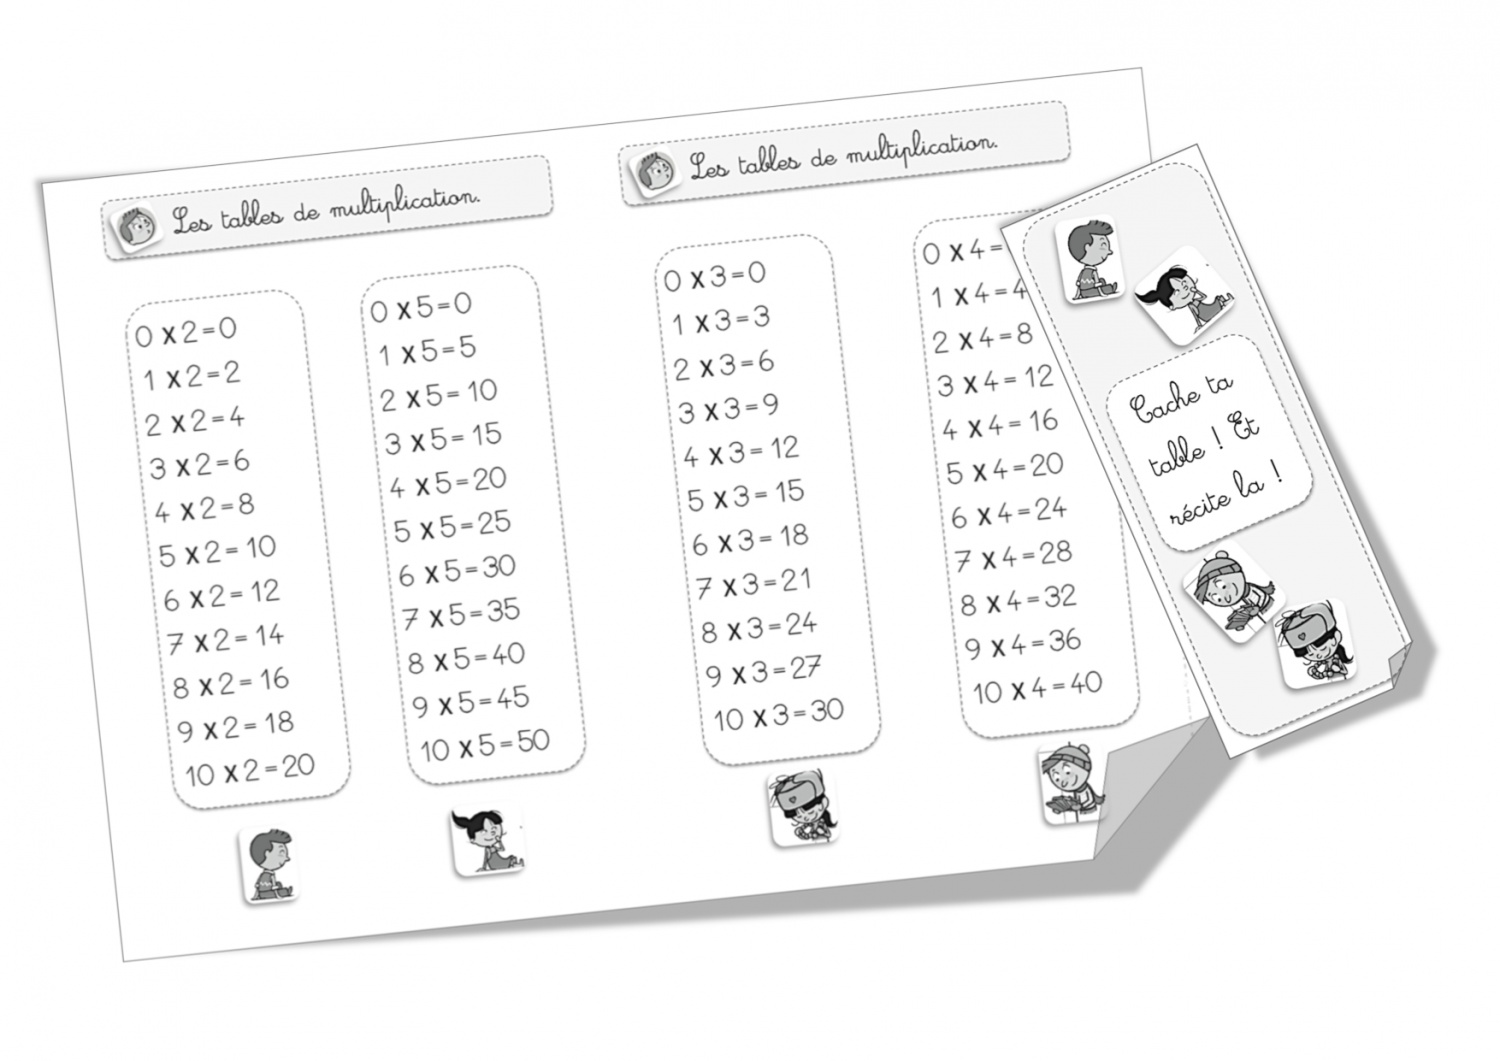 Exercice table de multiplication 2 3 4 5 les tables de for Apprendre multiplication ce1